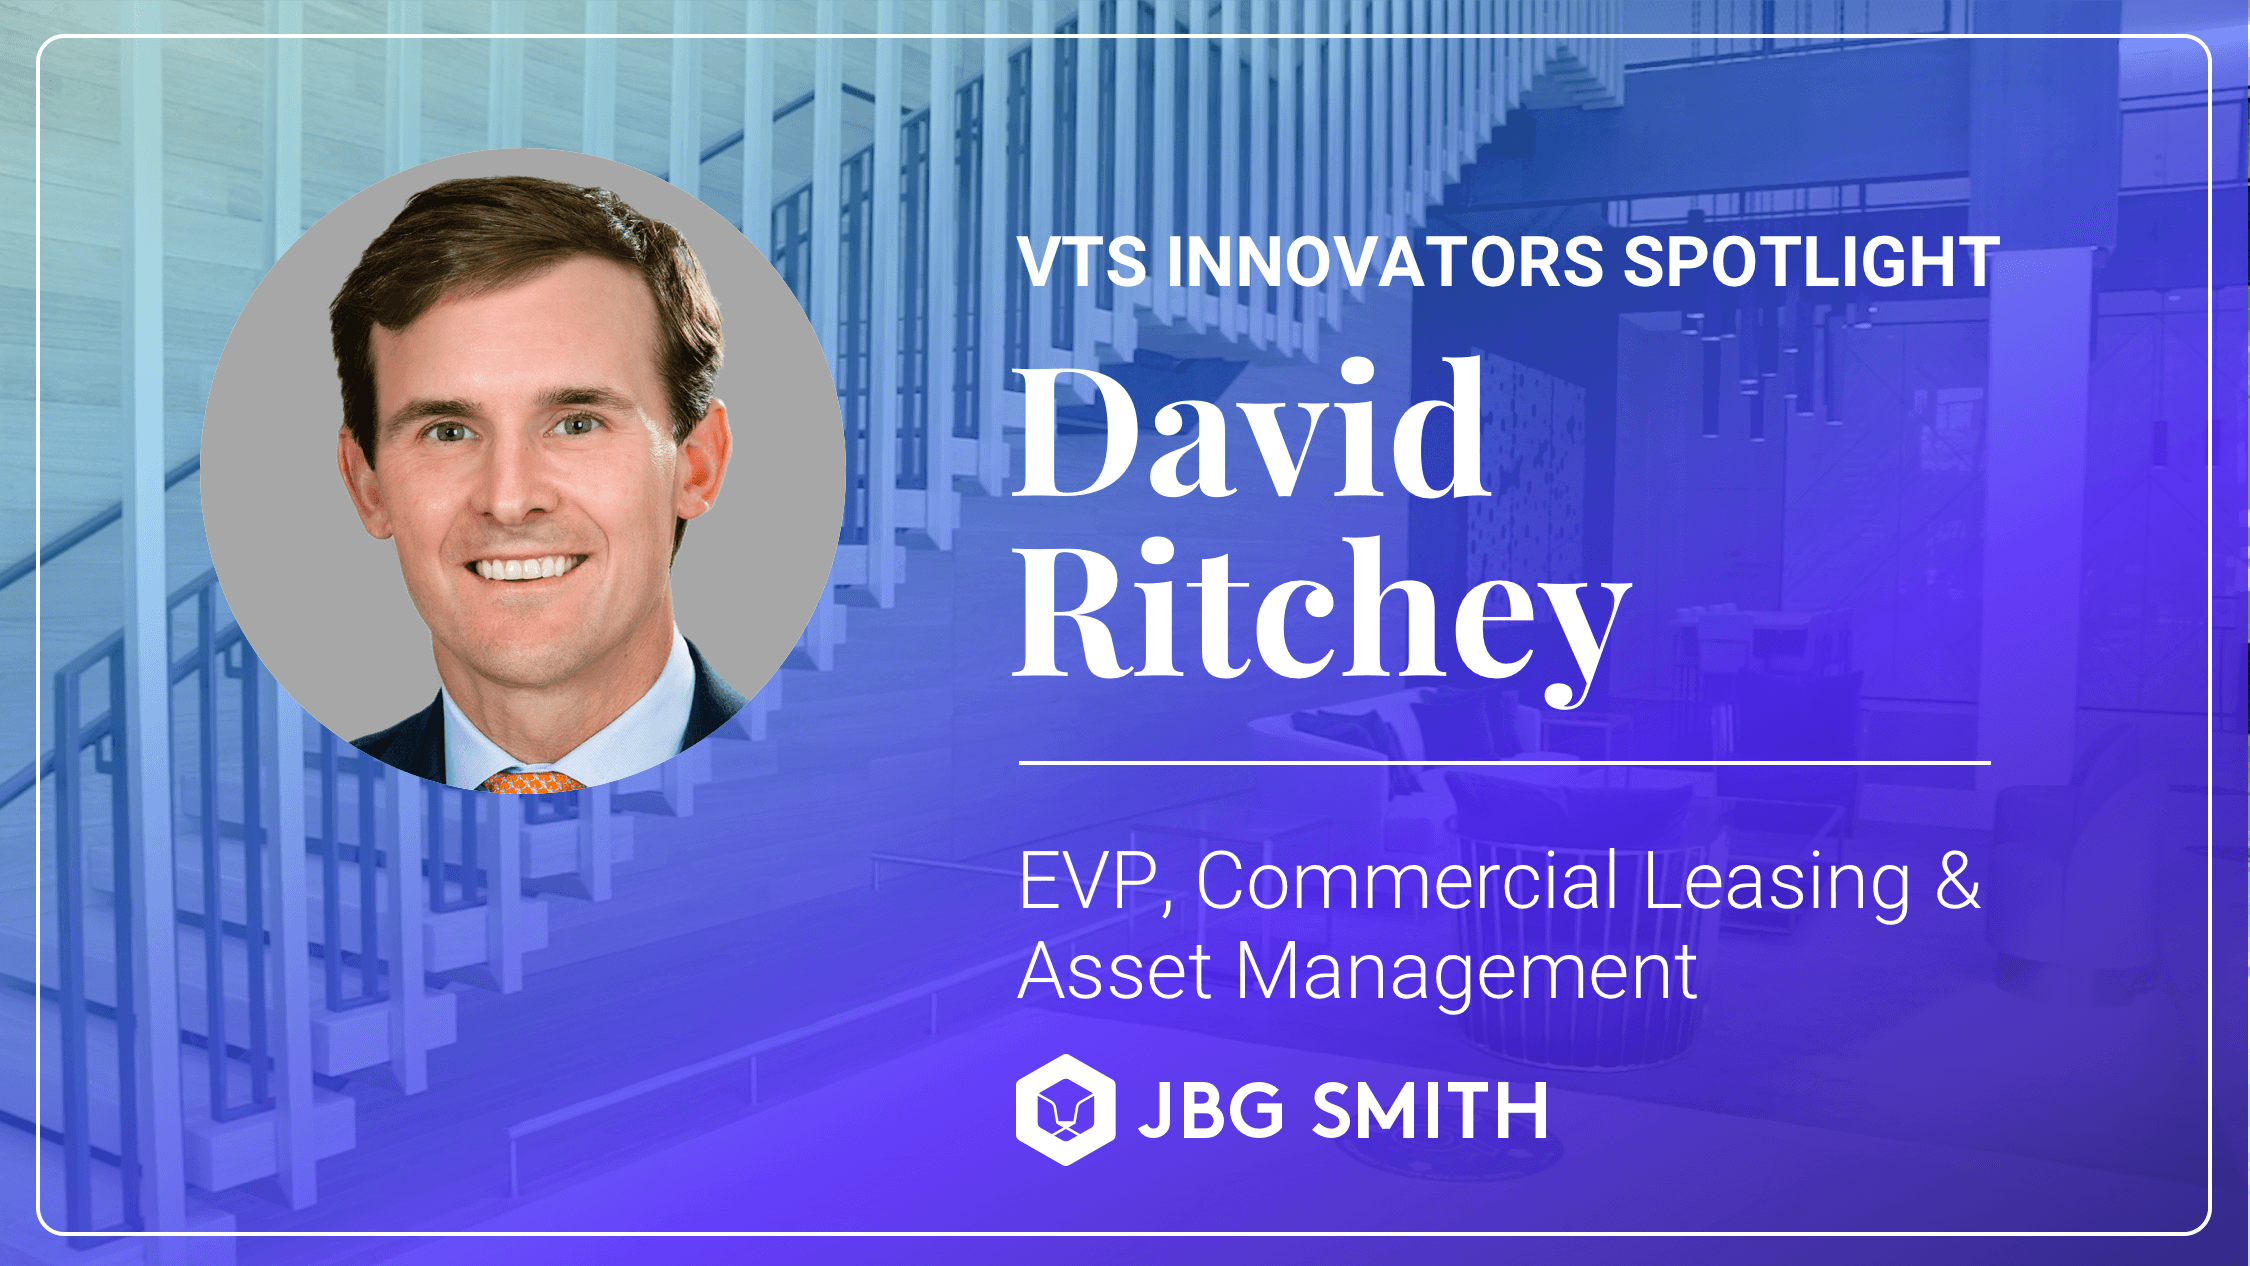 David Ritchey of JBG SMITH on Using Digital Platforms to Reach Audience in New & Unique Ways During COVID-19 and Beyond